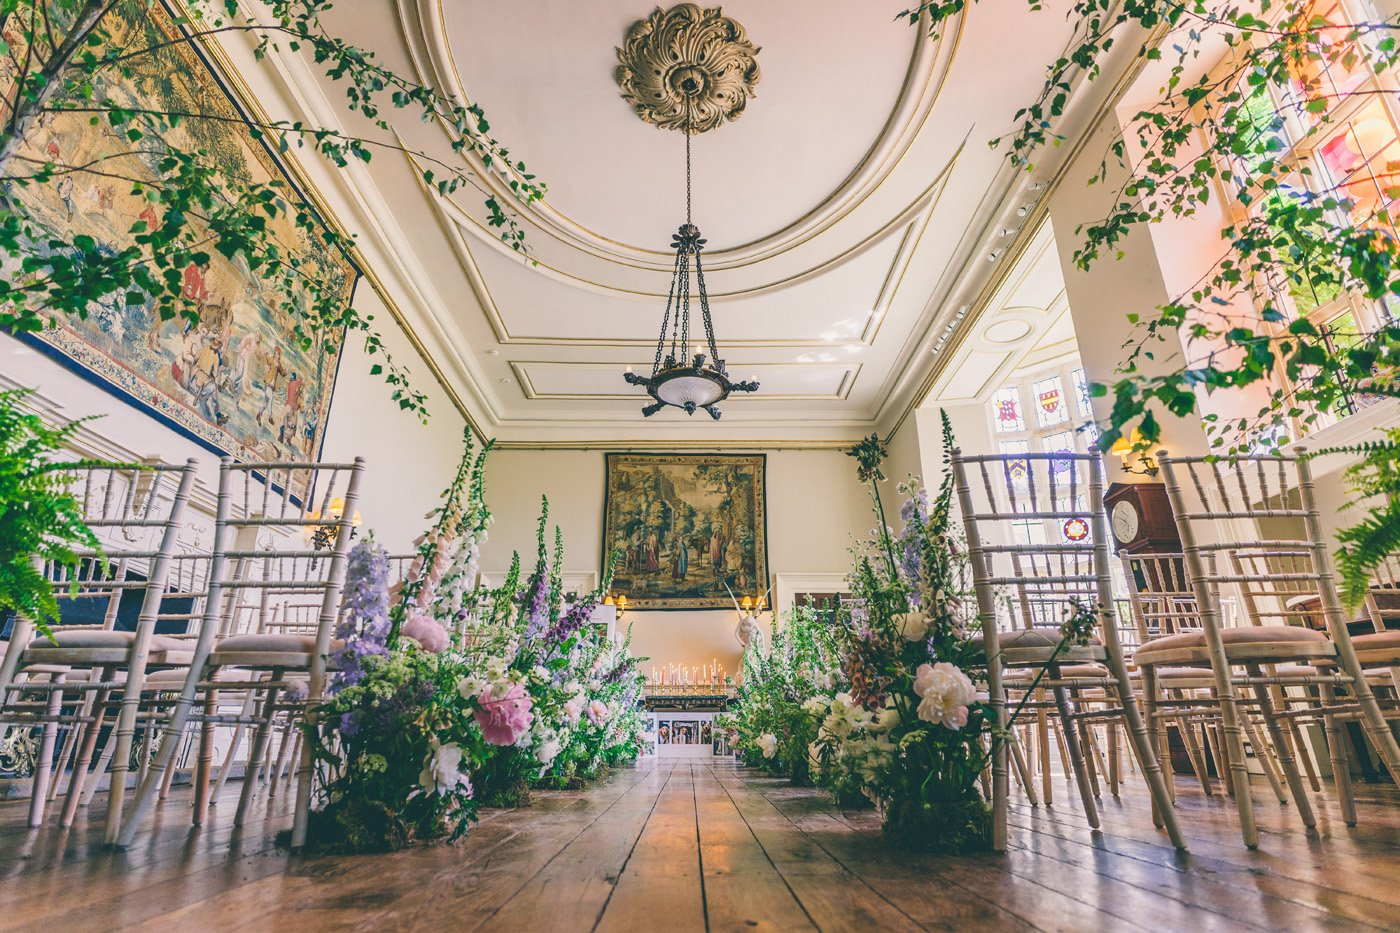 Stunning floral wedding aisle with tall wildflower arrangements and trees flanking the wedding aisle in the ceremony hall at Elmore Court in Gloucestershire